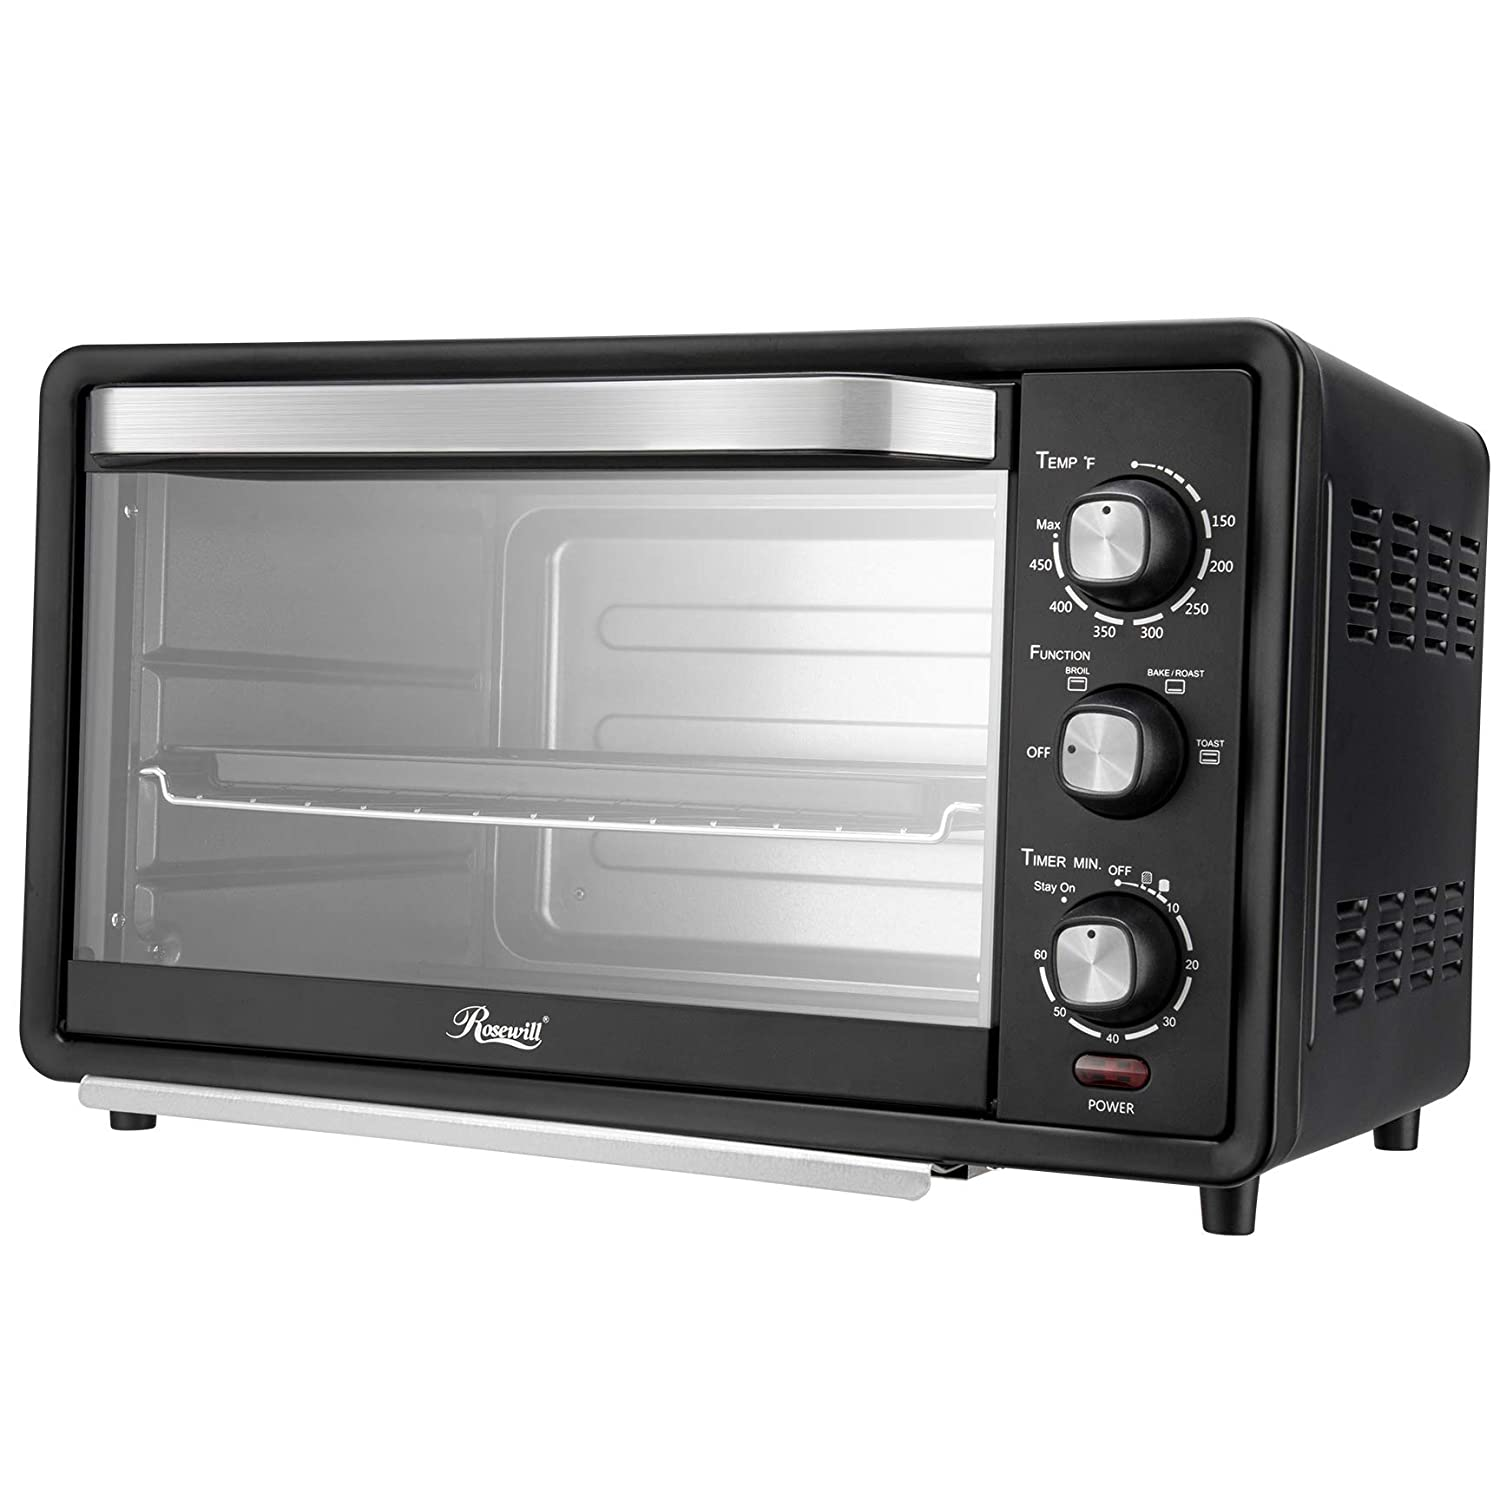 Rosewill RHTO-19001 6-Slice Convection Toaster Oven with Timer & Temperature Settings, 19-Liter Large Capacity Fits 12-Inch Pizza, Stainless Steel Countertop Toaster Oven, Baking Pan, Broil Rack